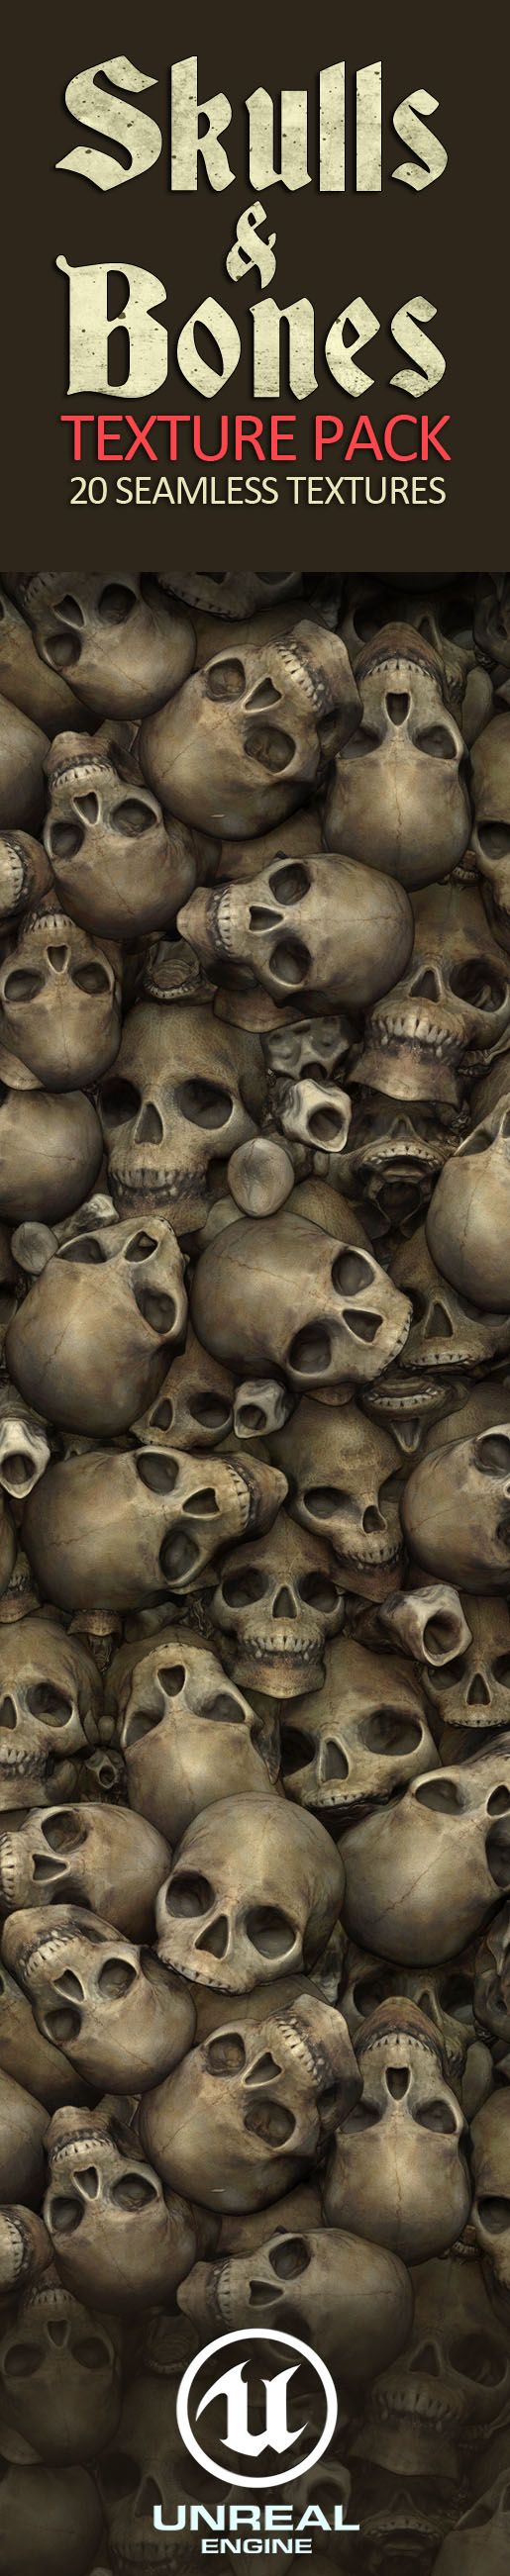 Skulls and Bones Textures. 20 Seamless Textures and Materials. Skulls and Bones combined with mud, sand, water, snow and rocks. 2D 3D game textures for Unreal Engine Game Asset. PBR sculpted textures.